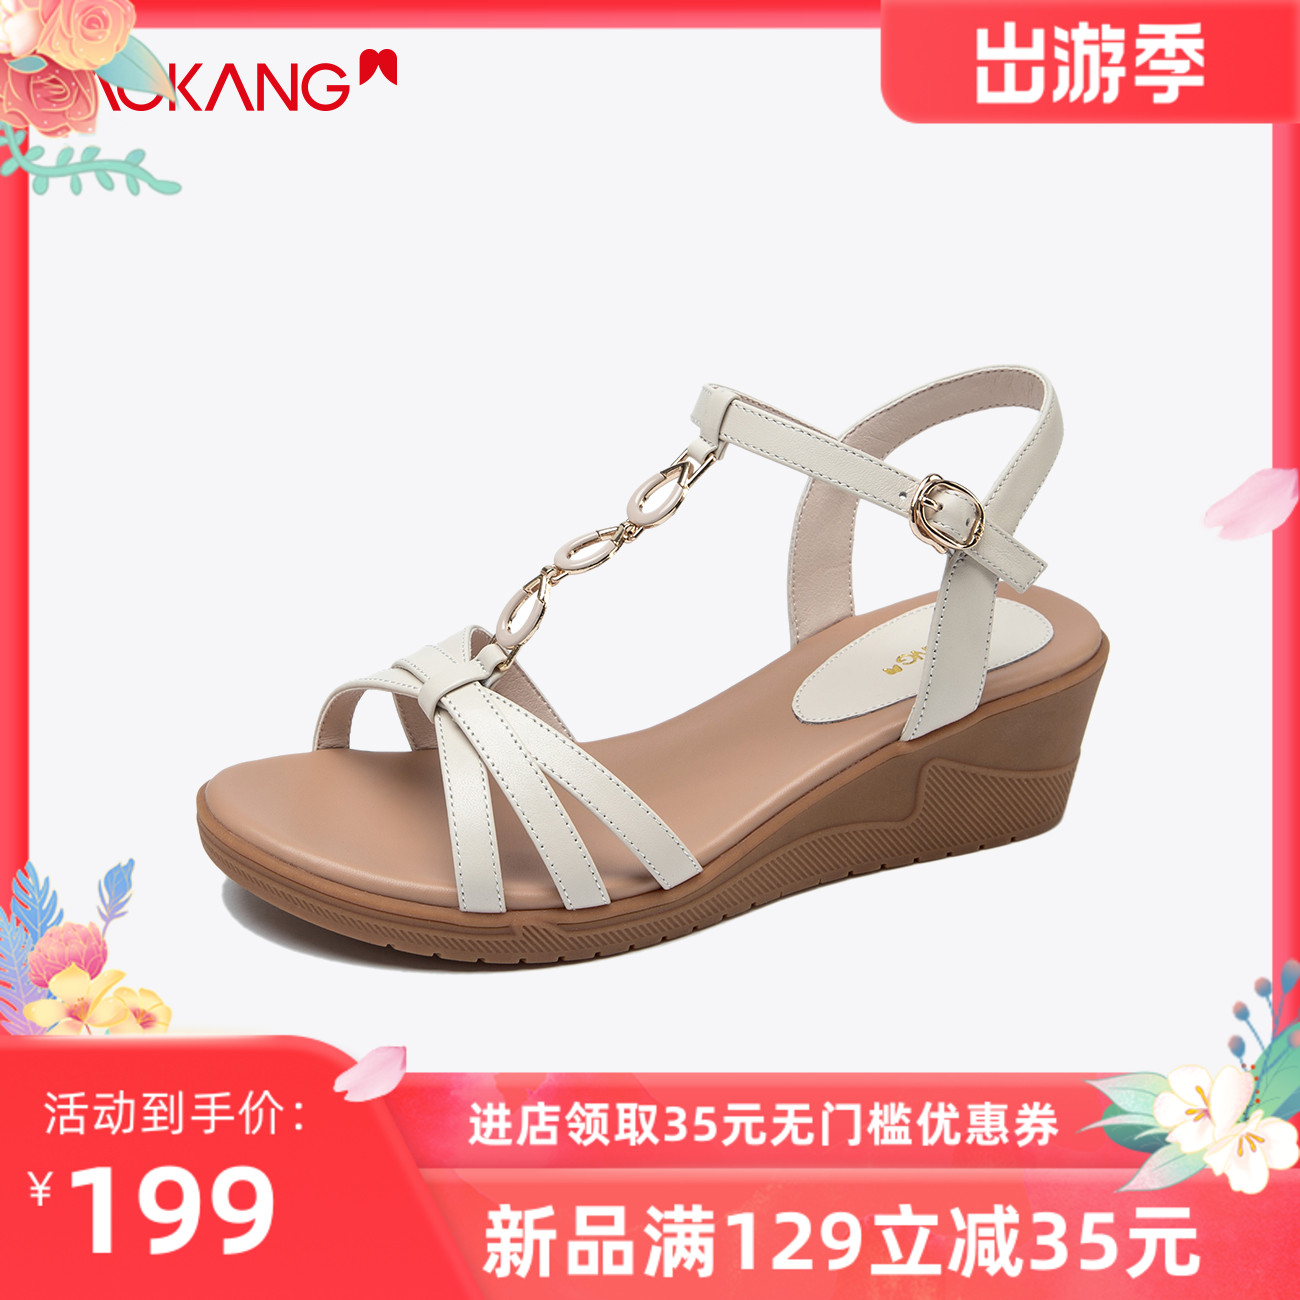 Aokang womens shoes 2020 summer new leather slope heel comfortable womens sandals casual simple mom sandals